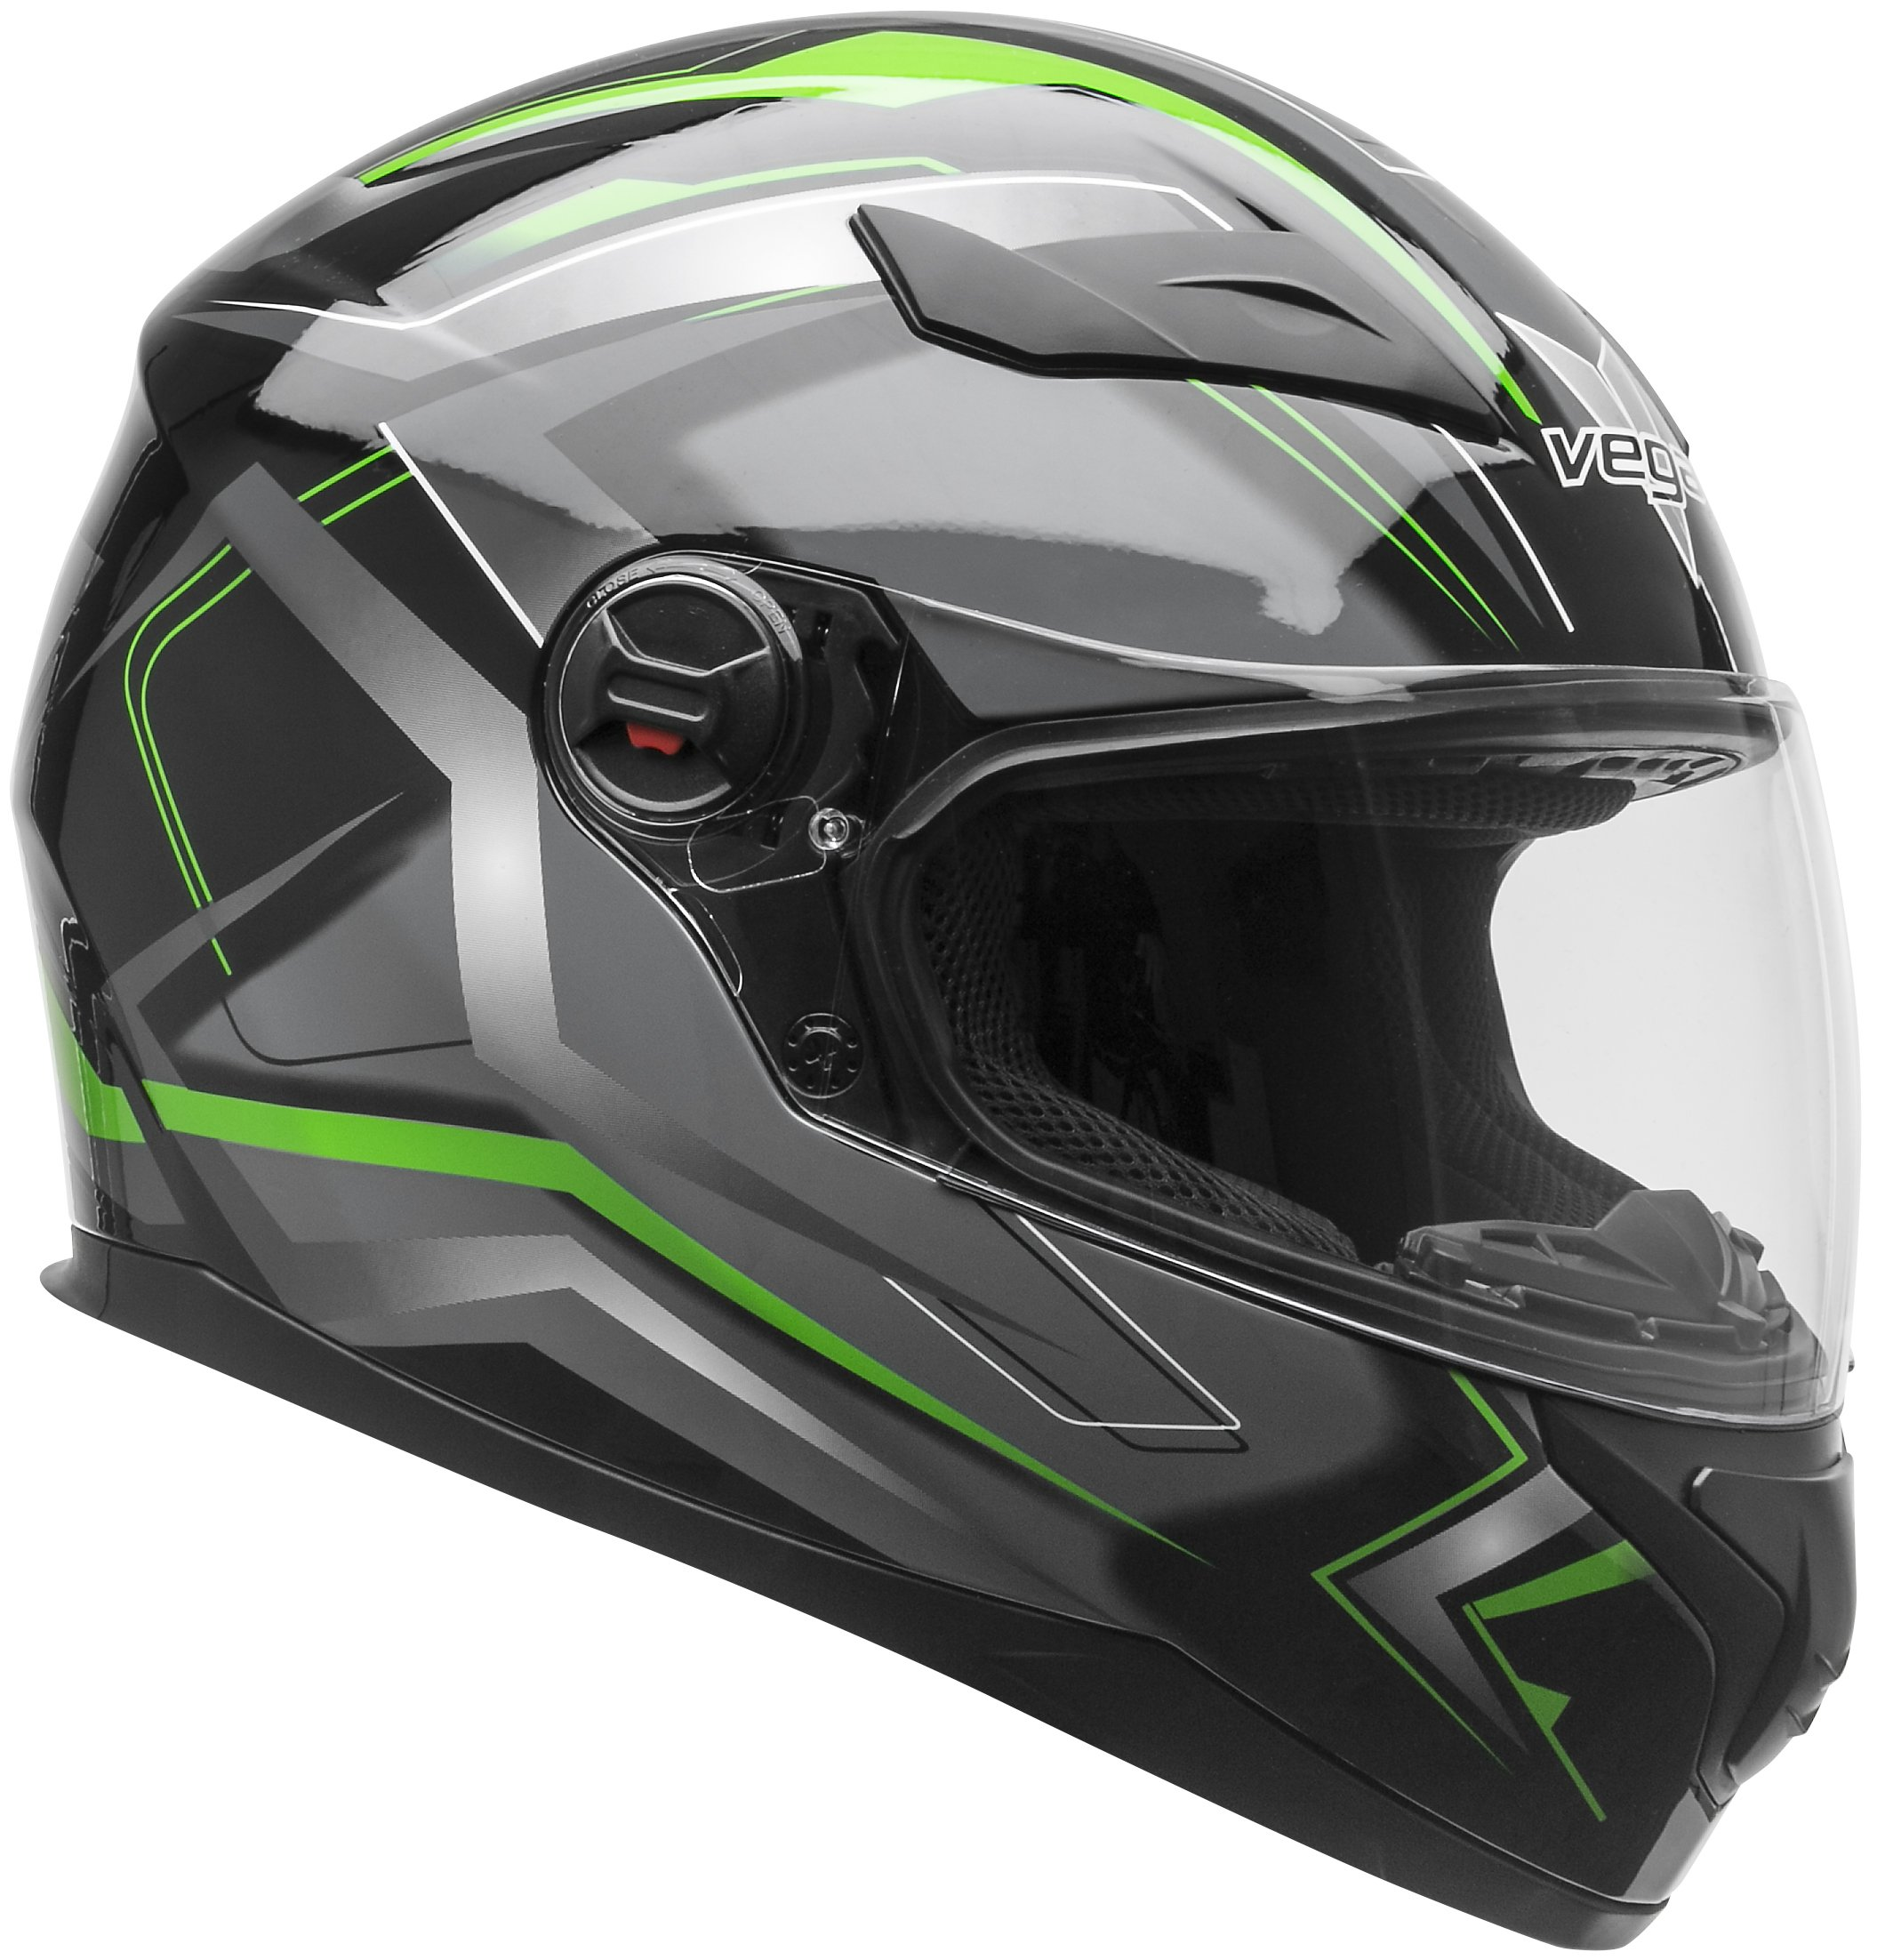 Vega Helmets AT2 Street Motorcycle Helmet for Men & Women – DOT Certified Full Face Motorbike Helmet for Cruisers Sports Street Bike Scooter Touring Moped (Green Flash Graphic, Large)